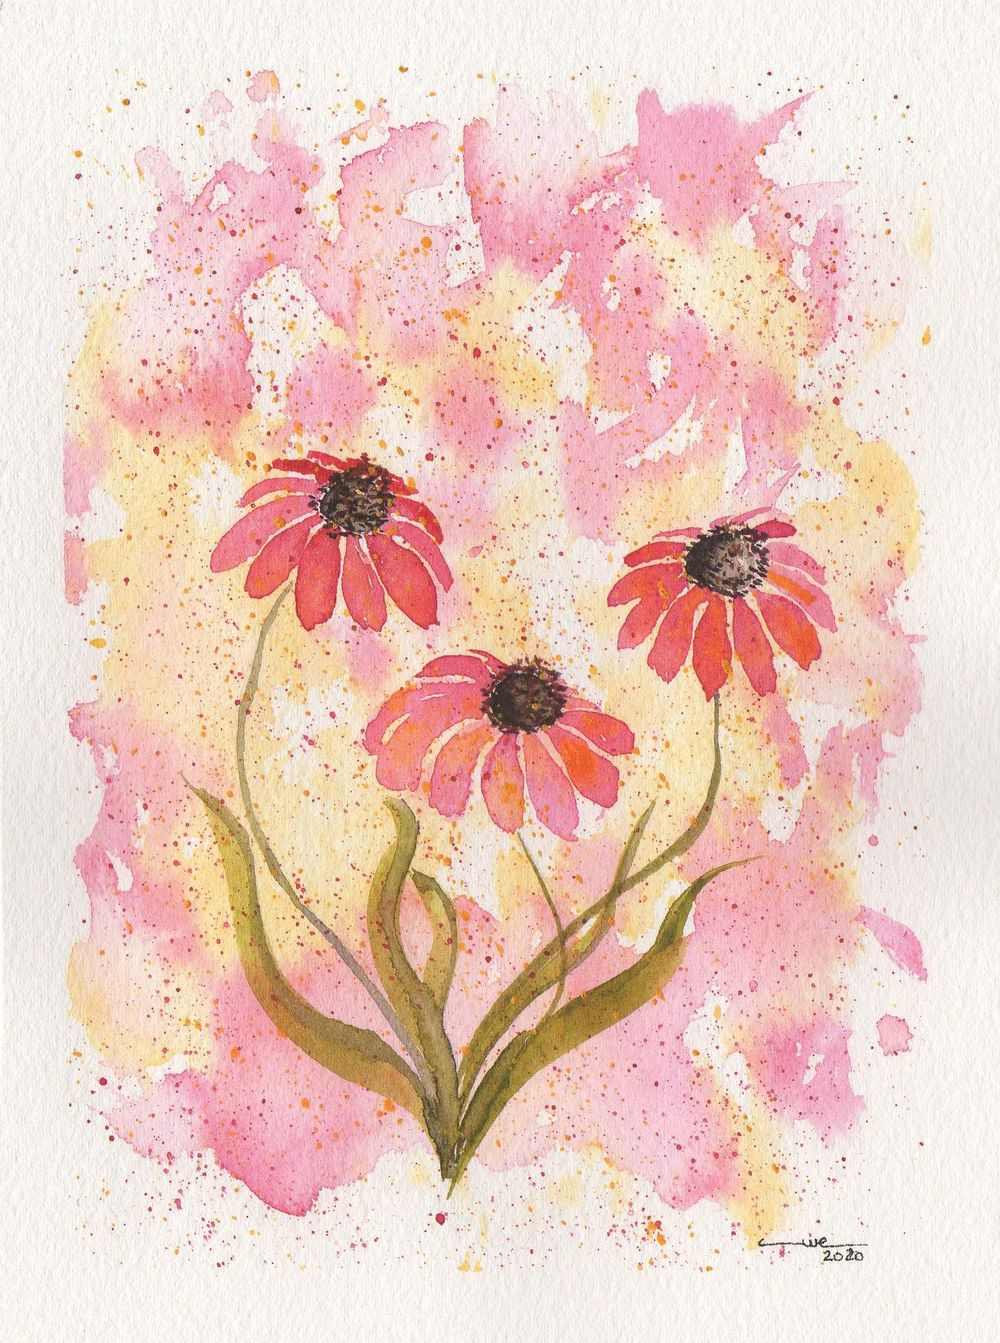 Expressive Watercolor Florals - image 1 - student project